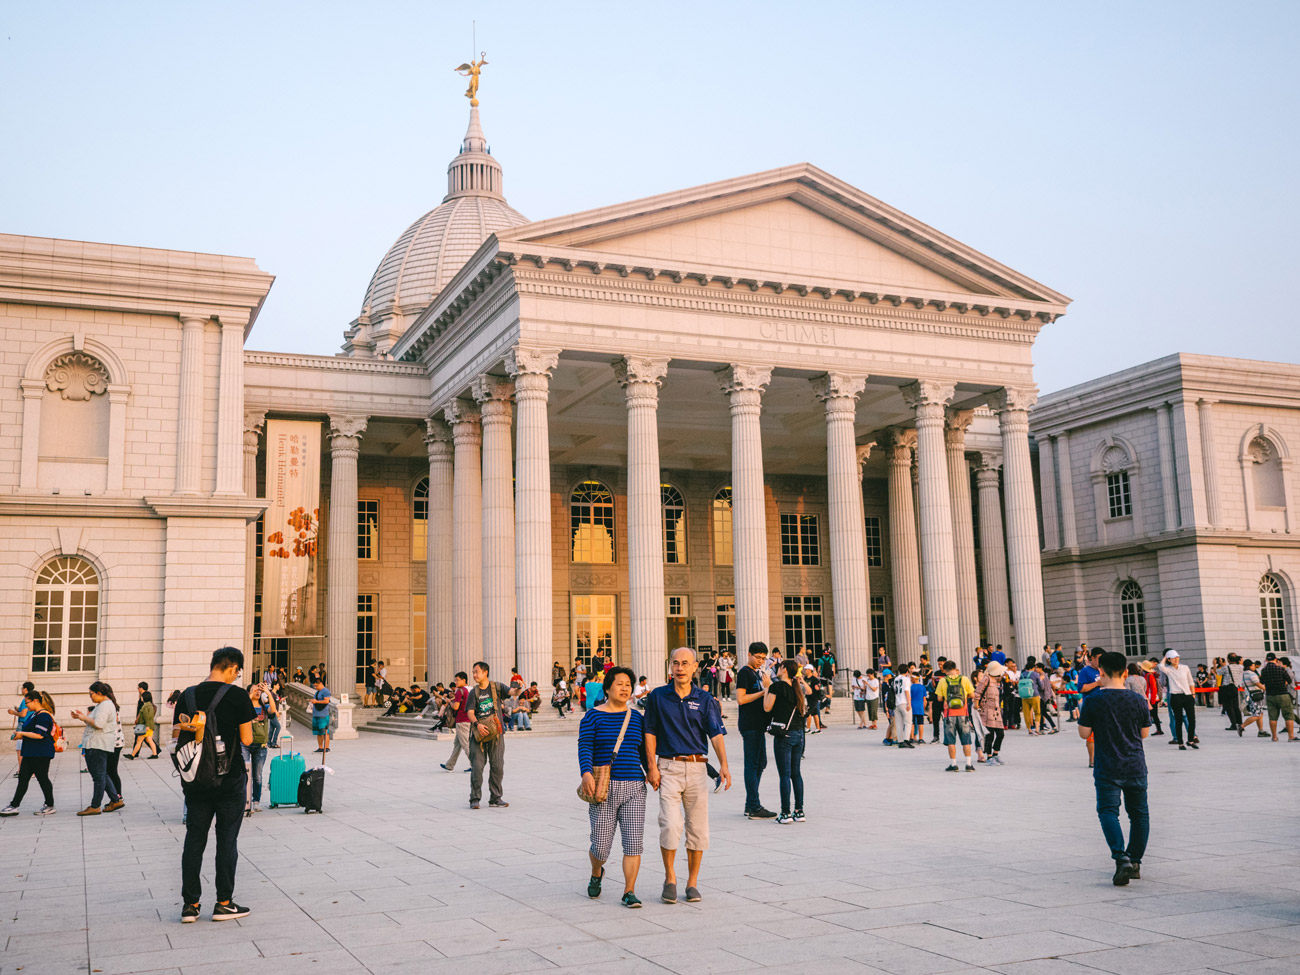 Tainan - Pokemon Go Safari Event - Up close view of Chimei museum